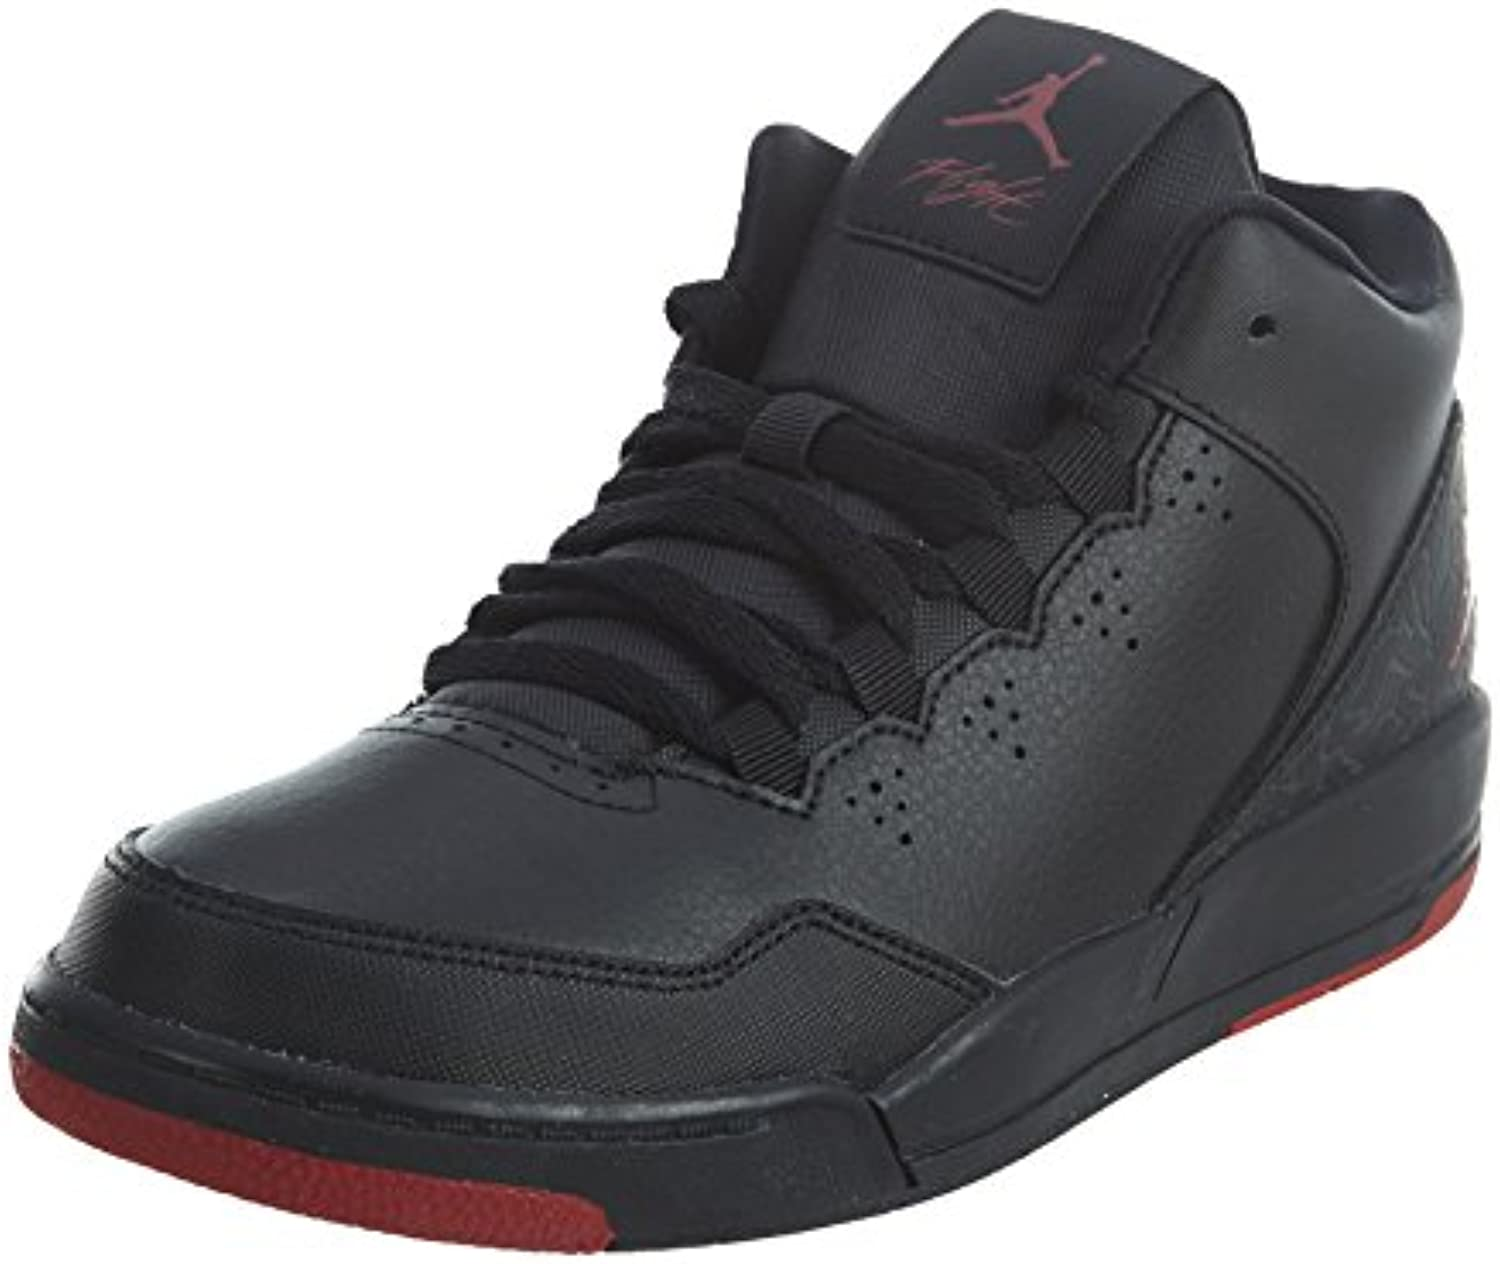 Boy's Jordan Flight Origin 2 Shoe Basketball Shoe 2 (PS) Black/Gym Red-Gym Red 1Y 9254cb